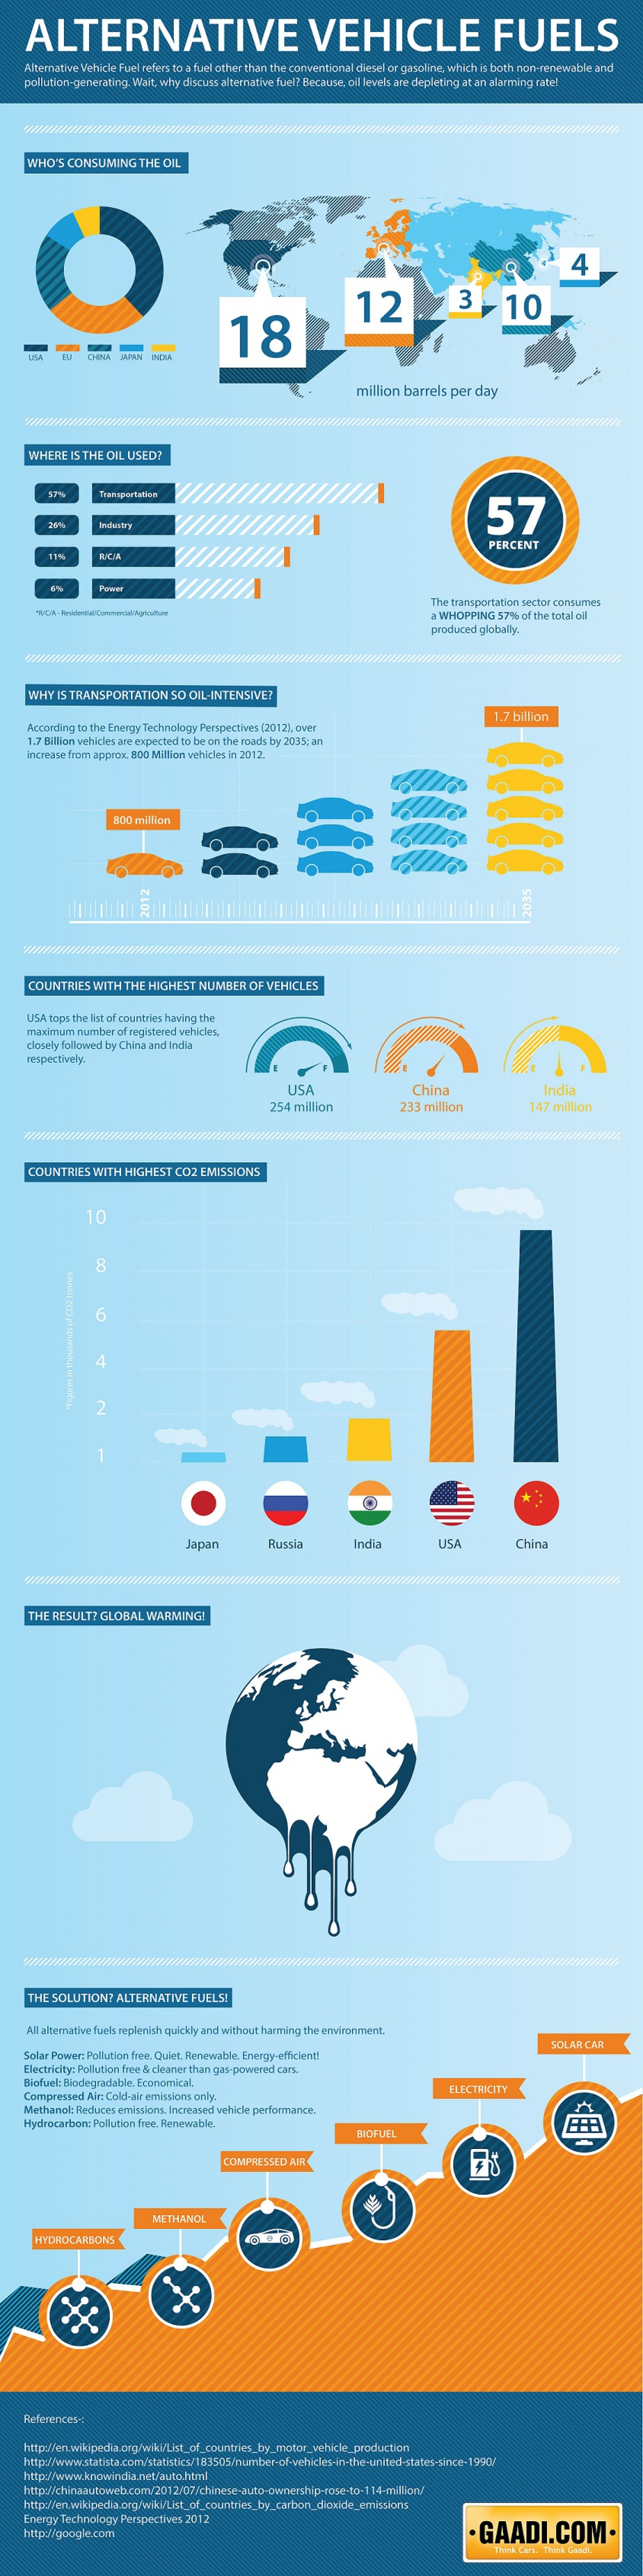 Alternative Vehicle Fuels Infographic